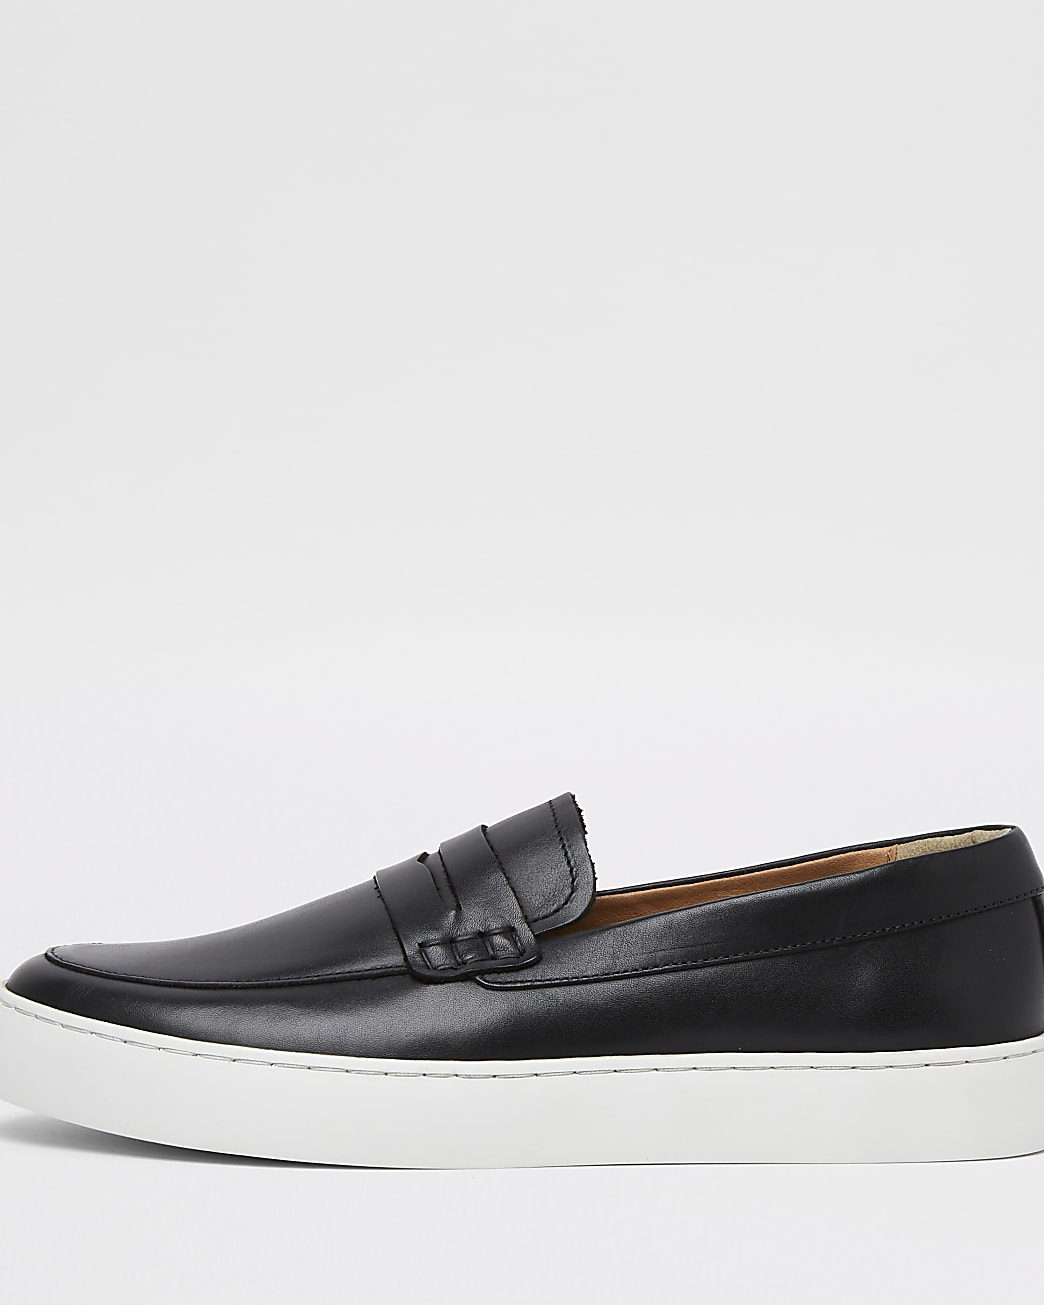 Black leather cupsole loafer